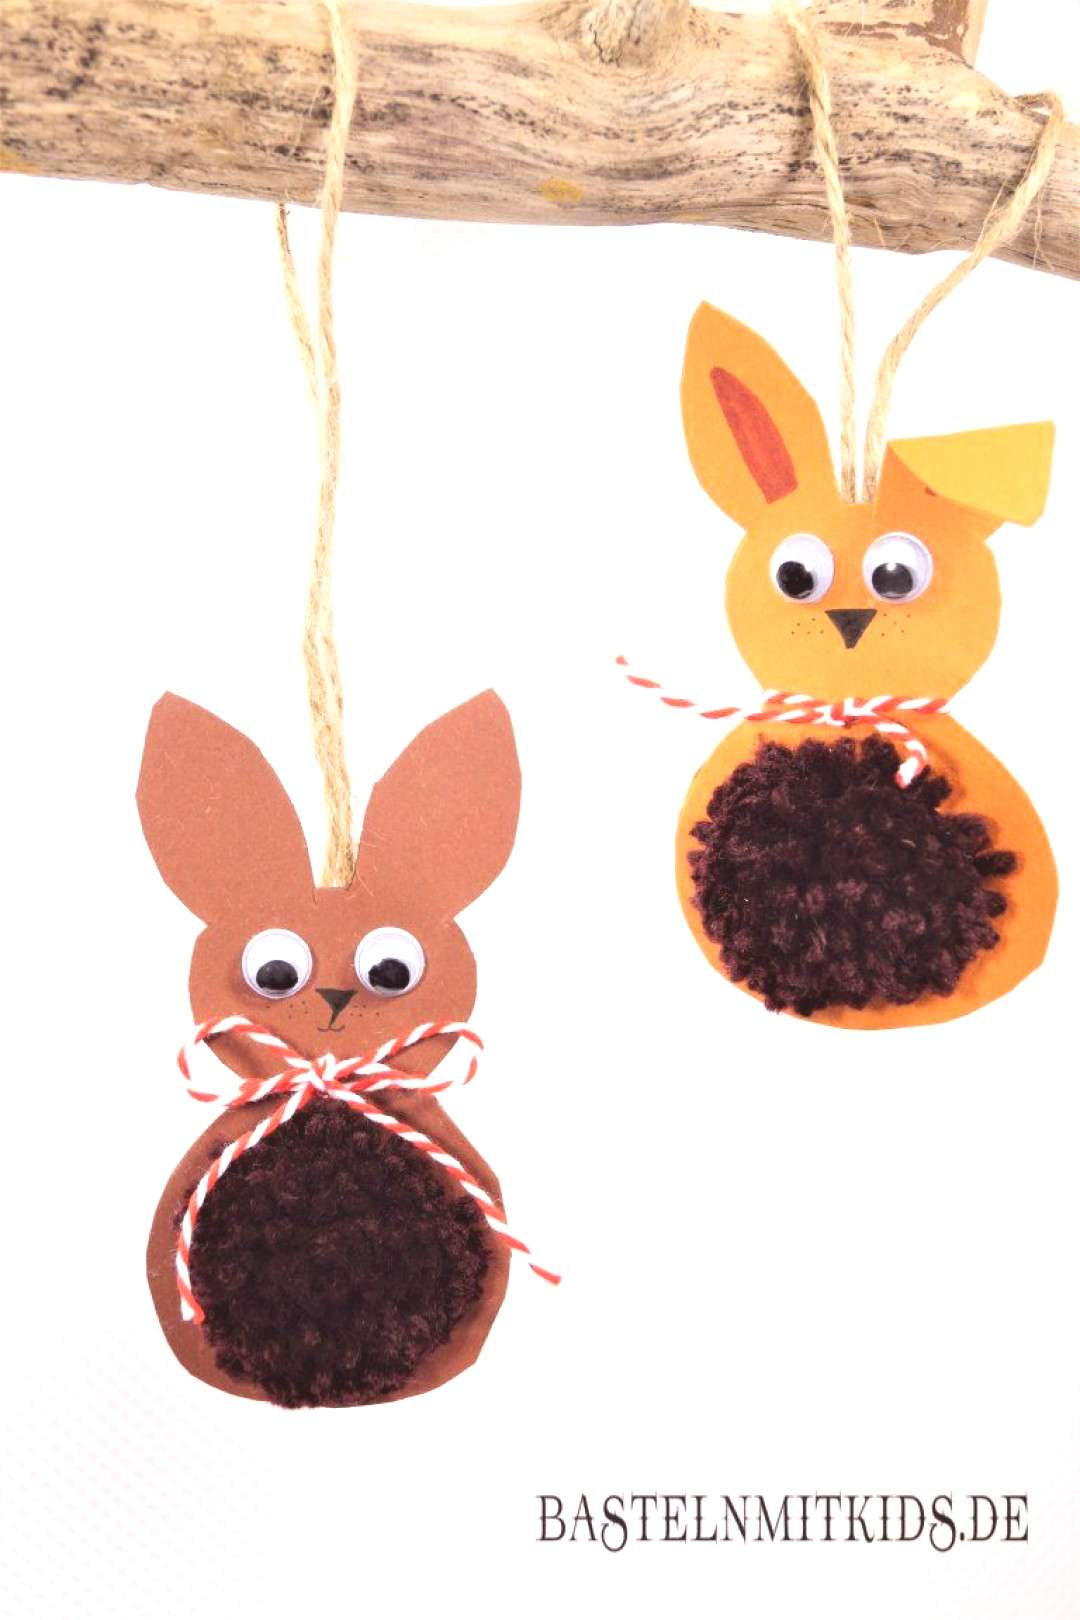 Easter bunnies tinker with children and toddlers - crafting kids#bunnies